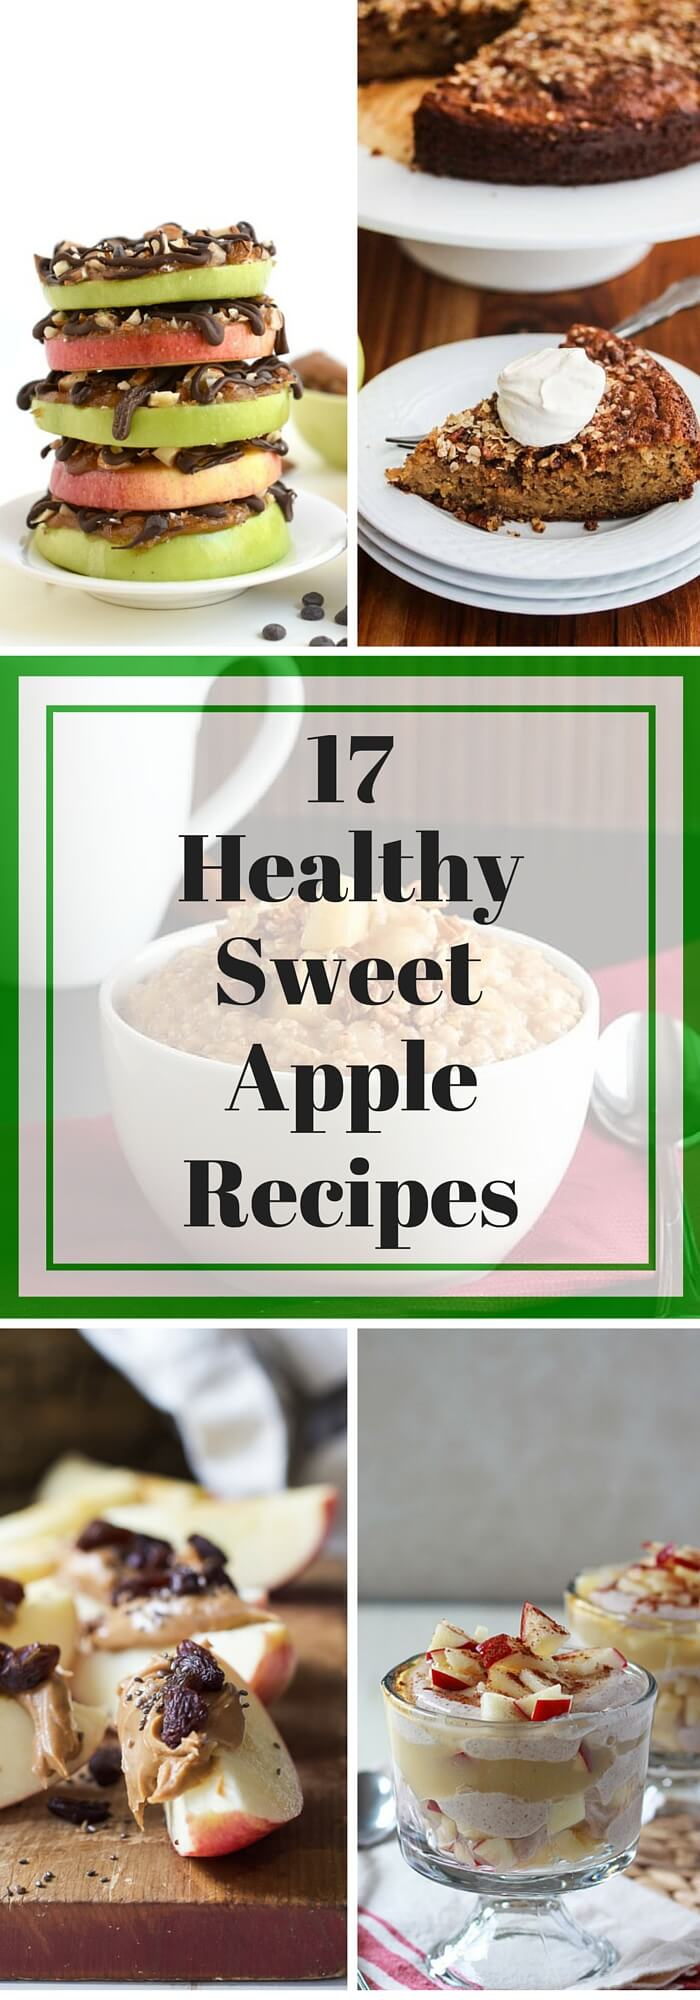 17 Healthy Sweet Apple Recipes - apples are in season so enjoy them in all these healthy apple breakfast, snack and dessert recipes!